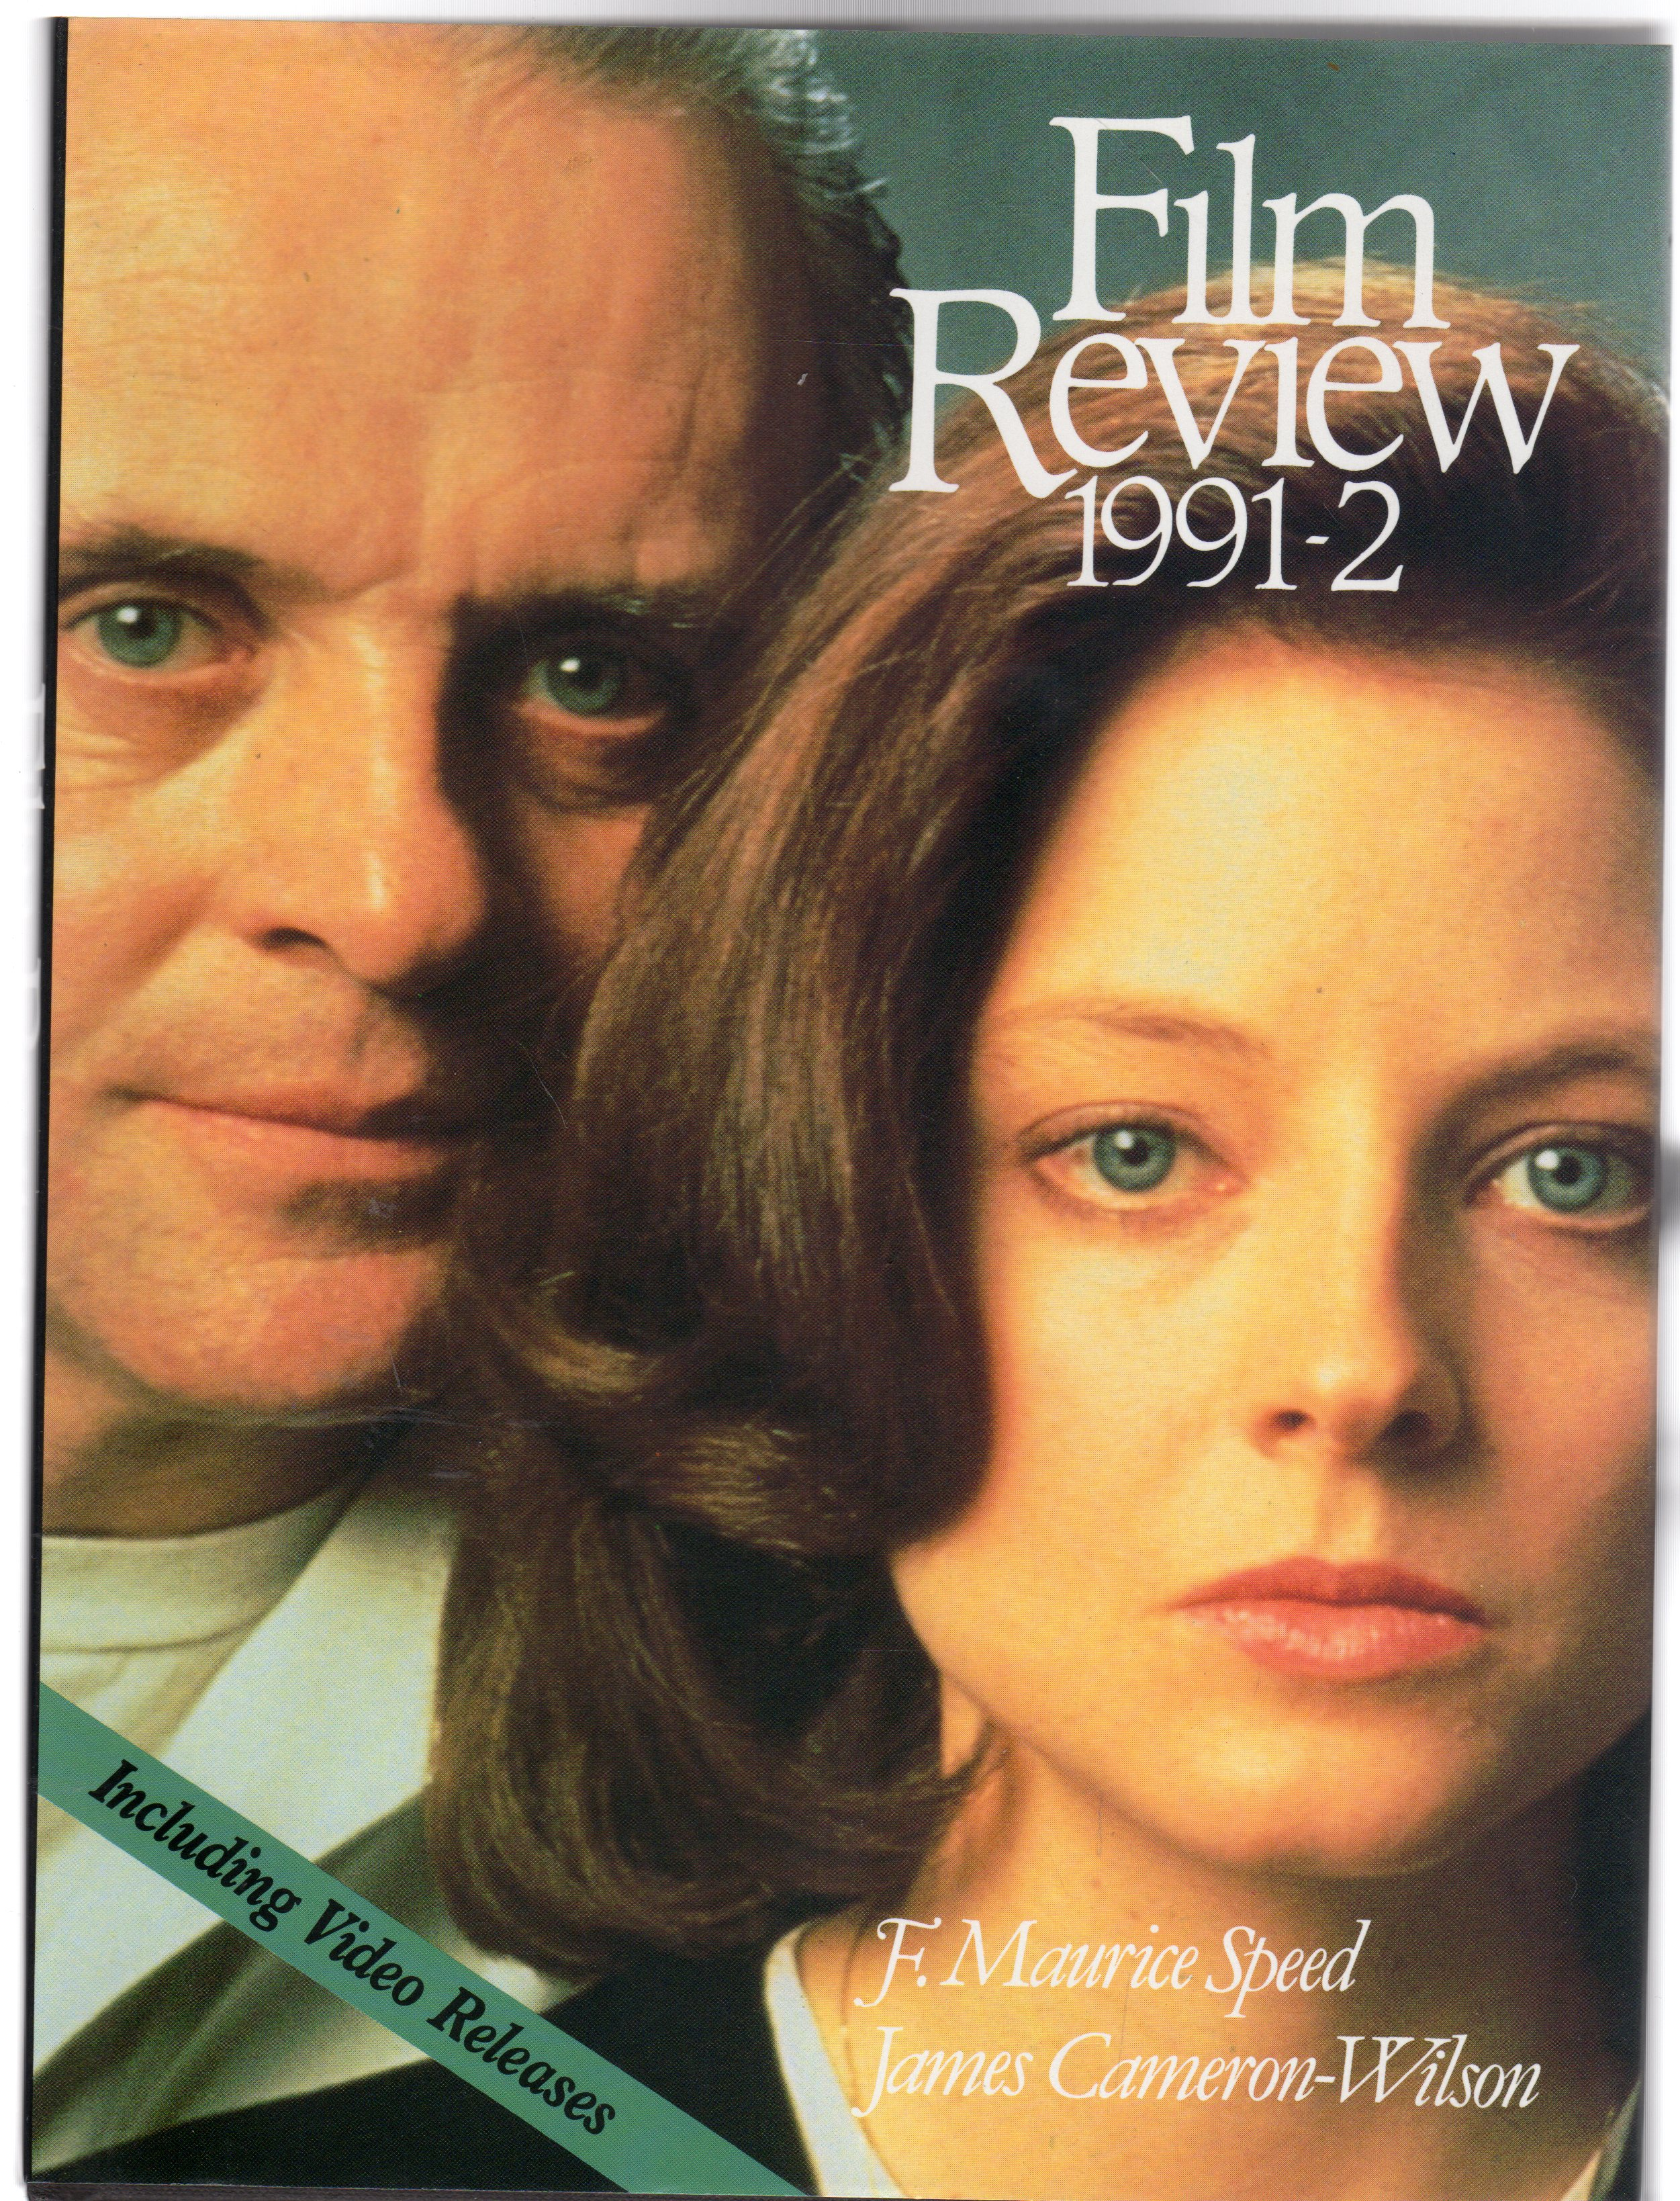 Image for Film Review 1991-2